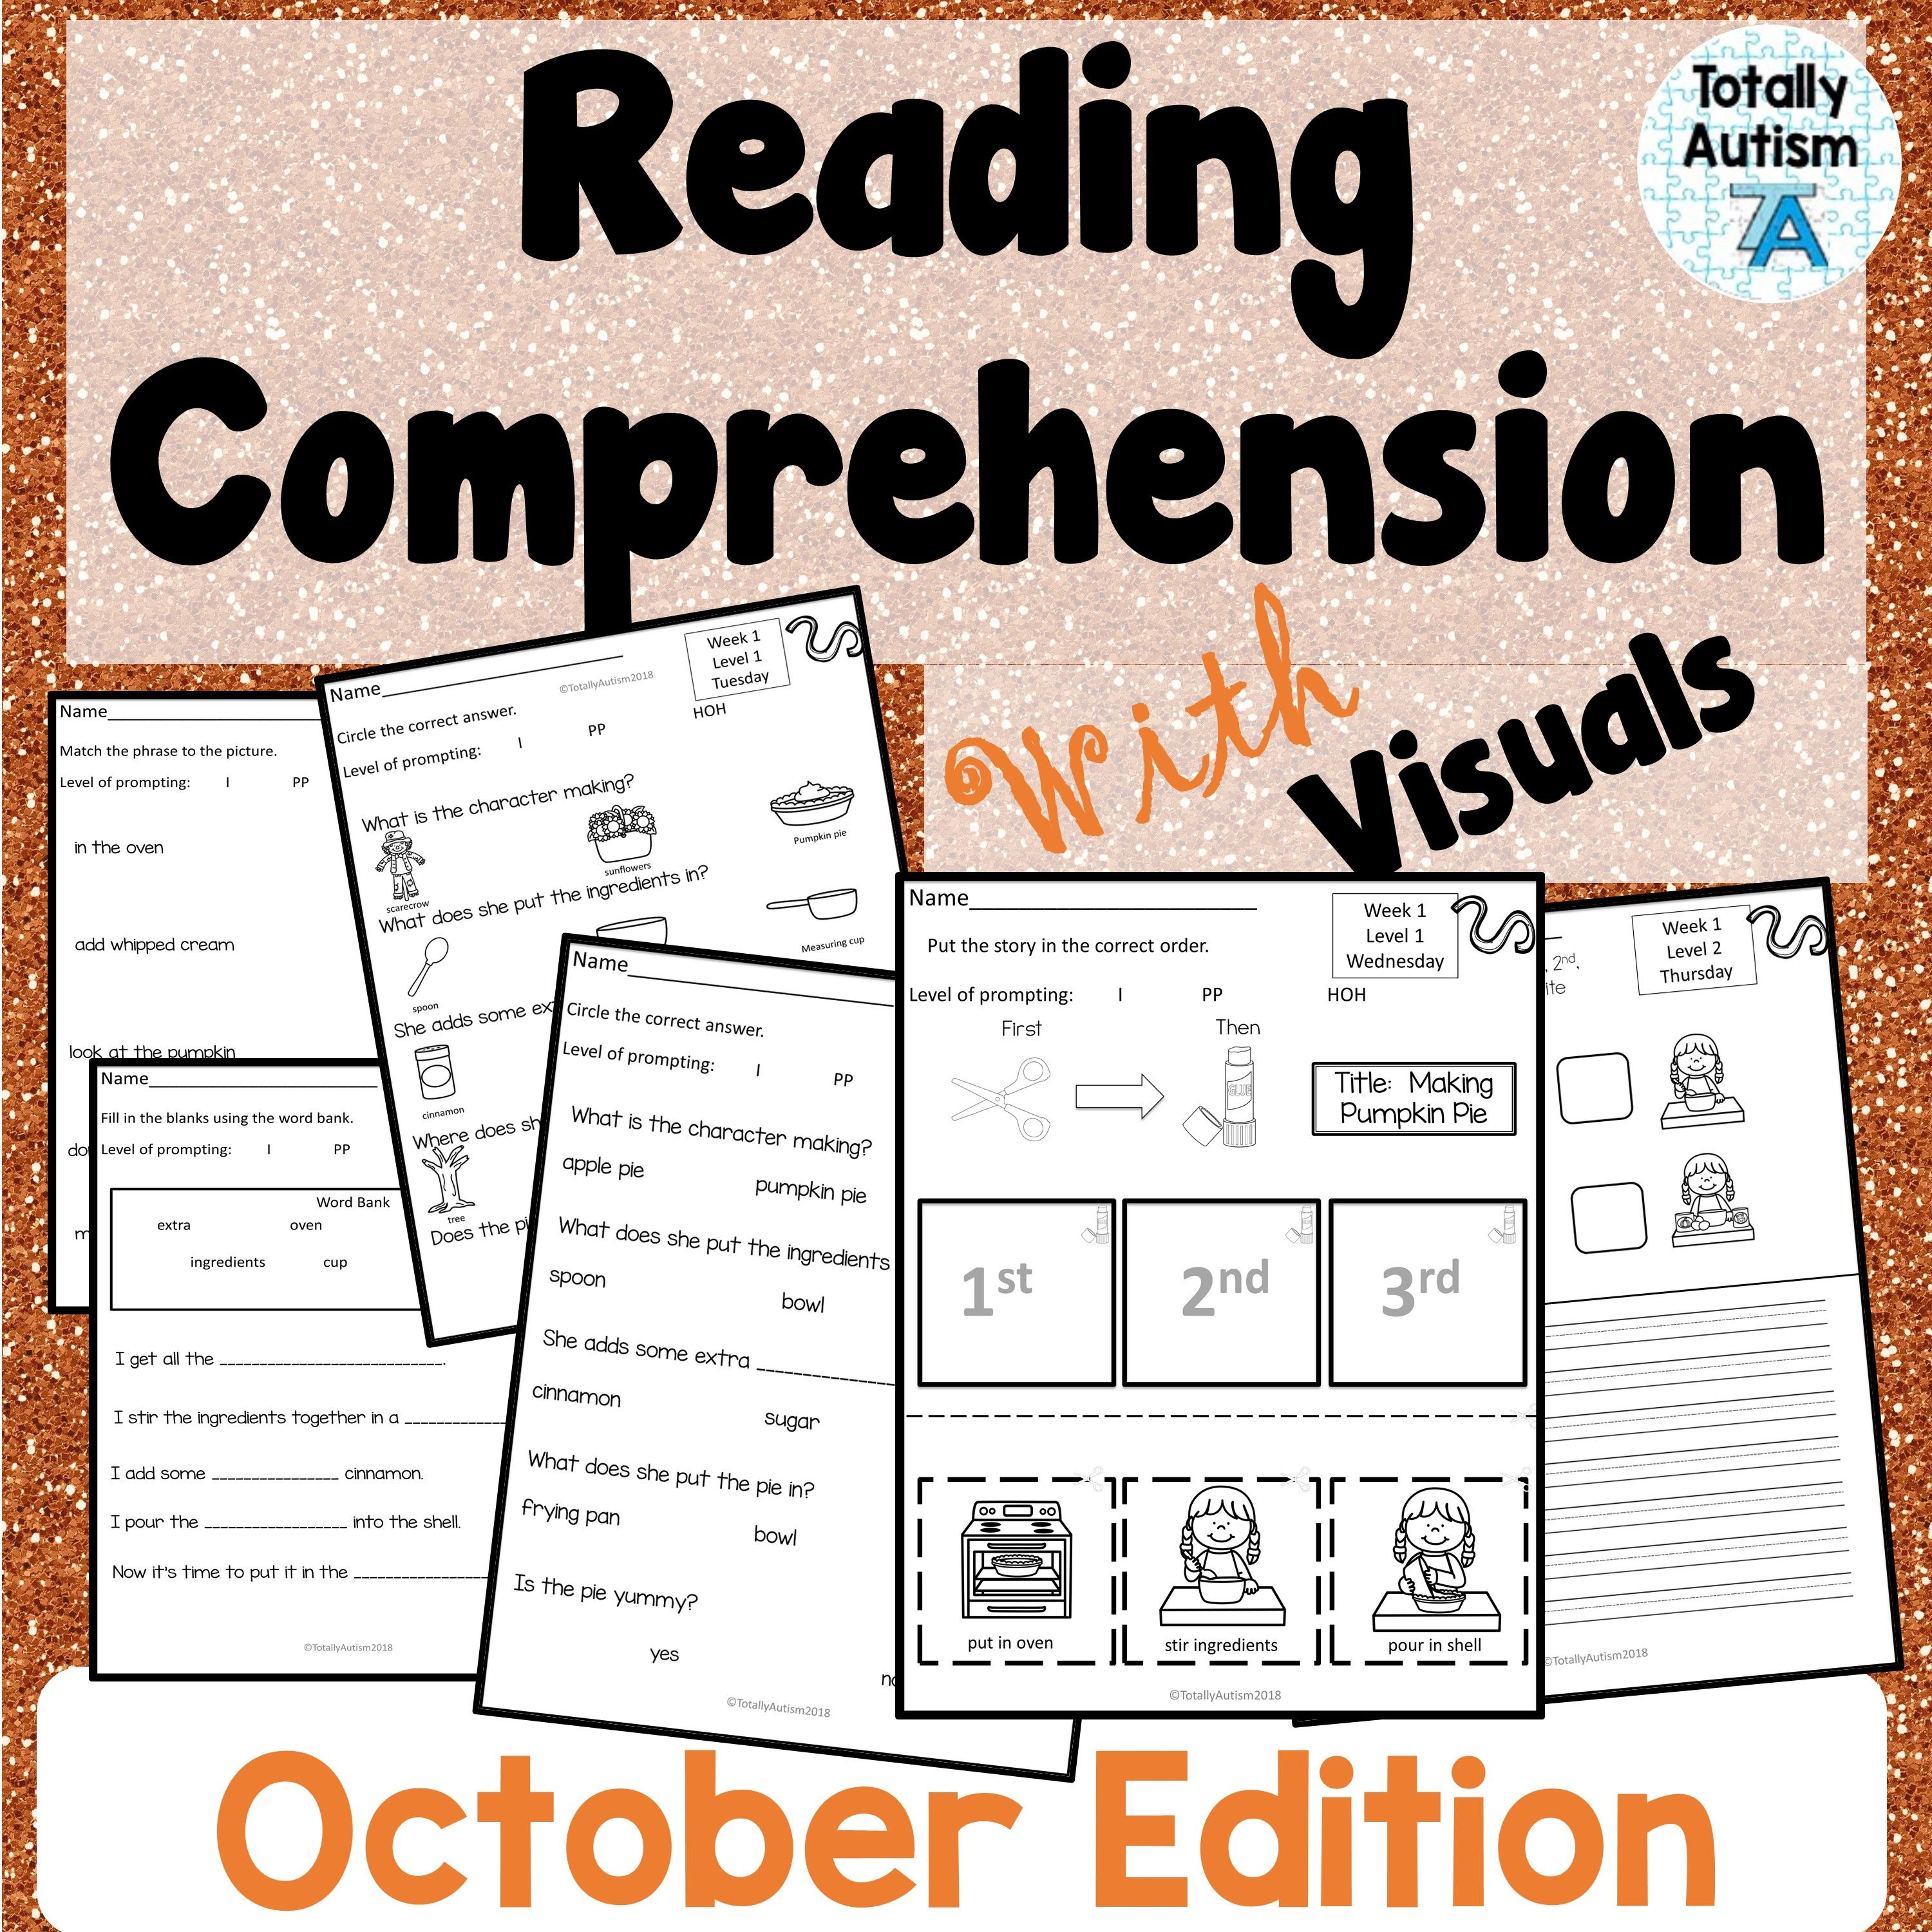 Reading Comprehension With Visuals October Edition